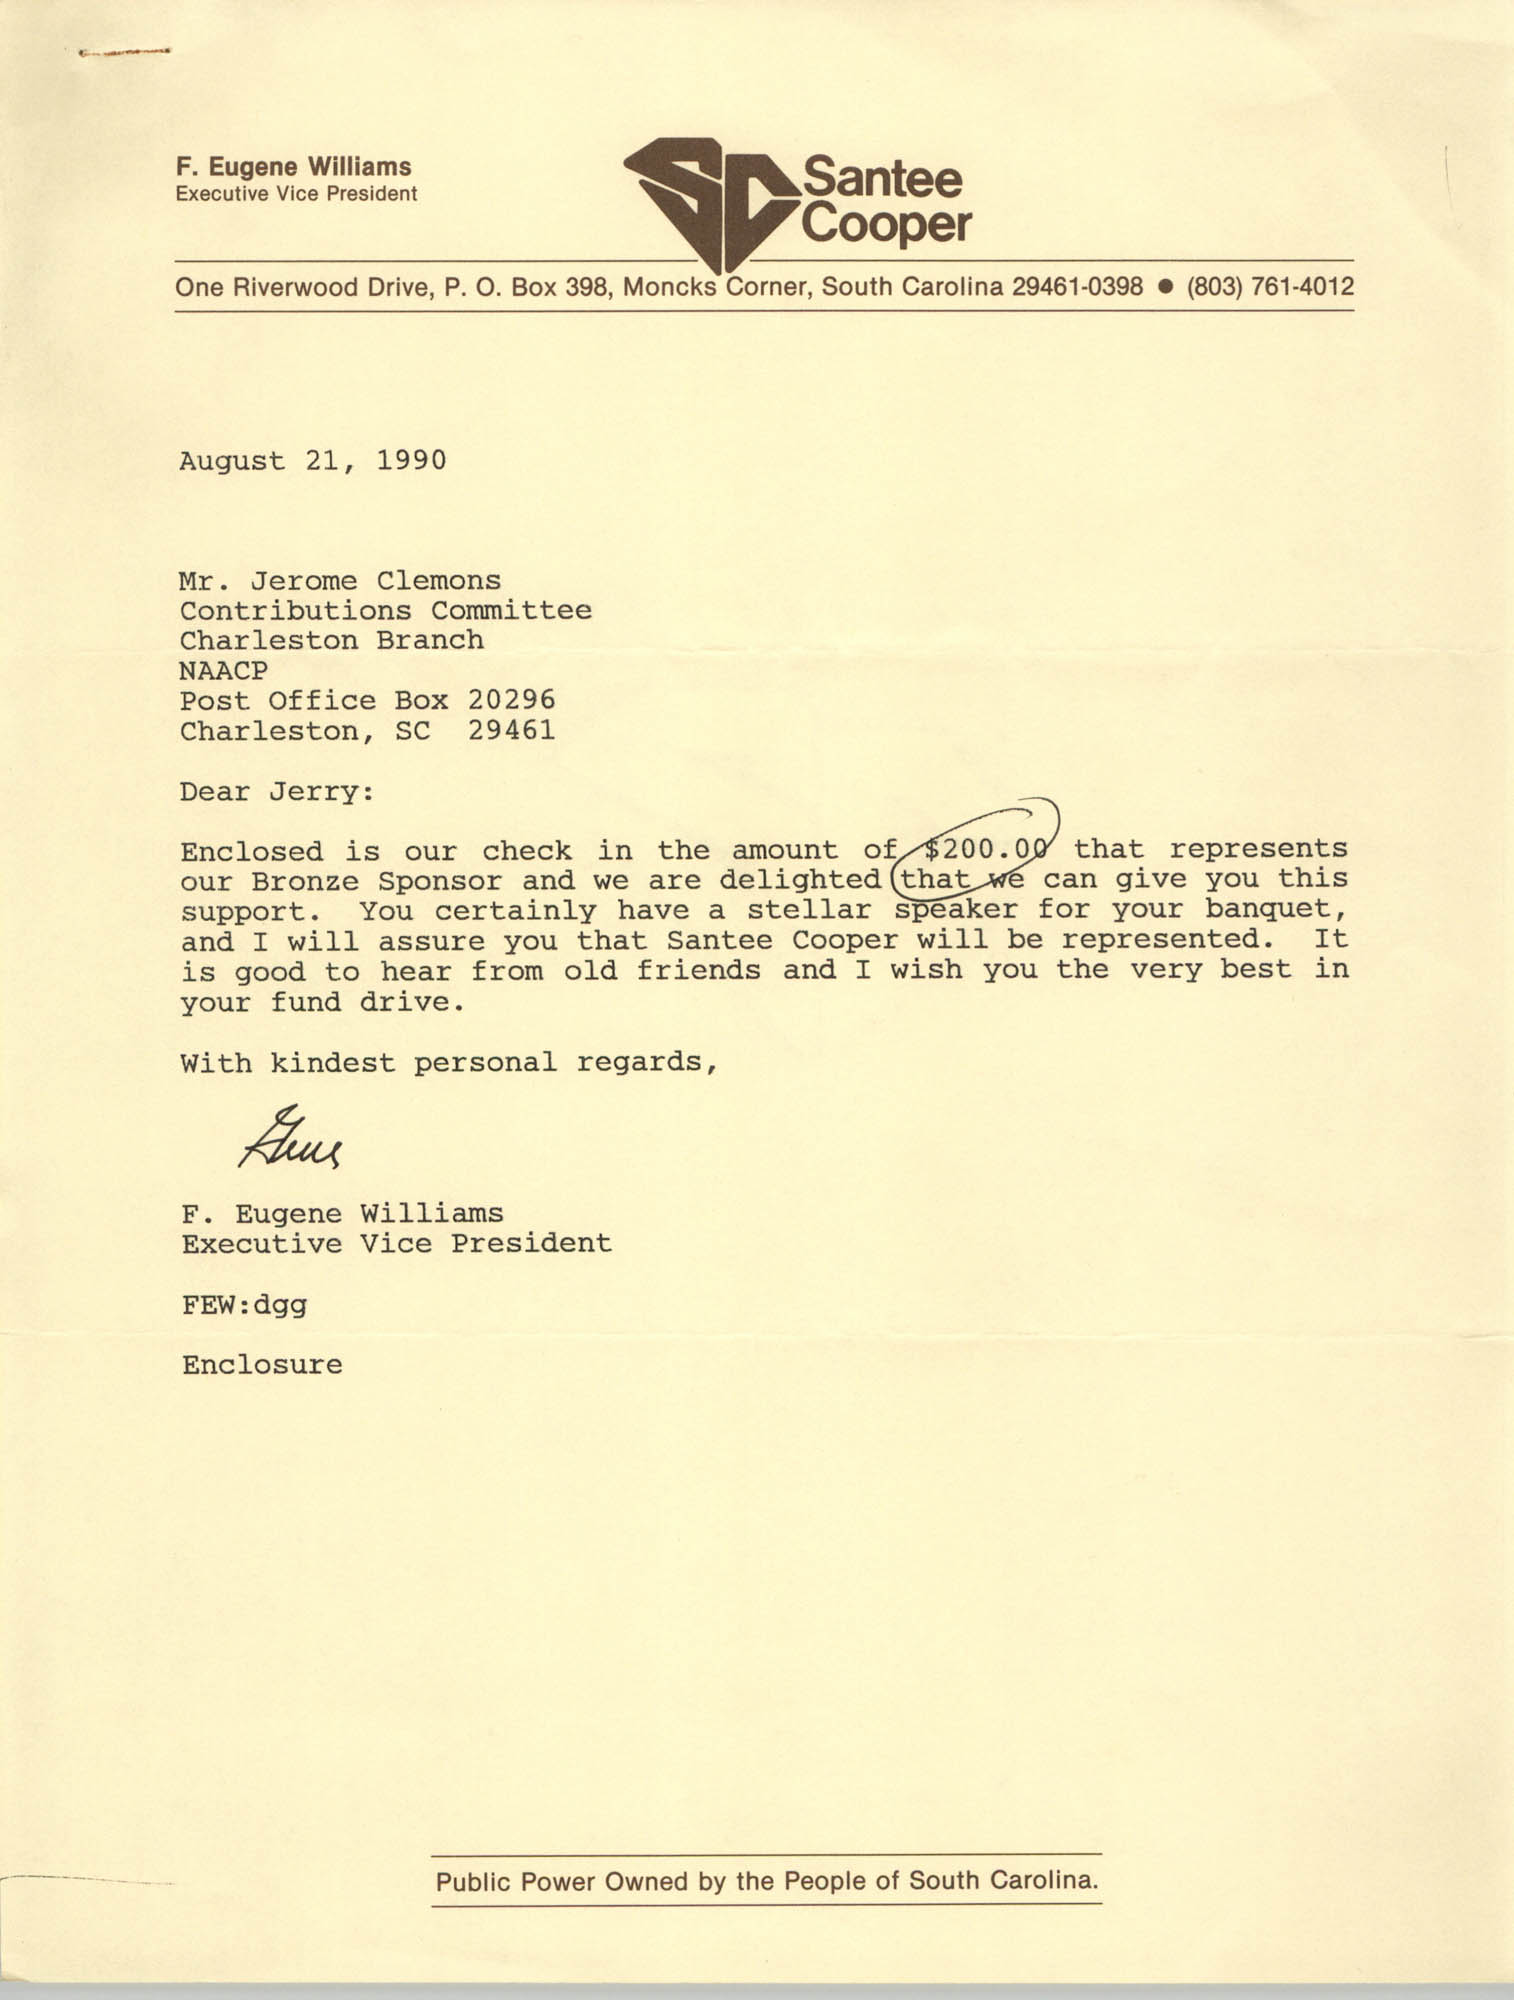 Letter from F. Eugene Williams to Jerome Clemons, August 21, 1990